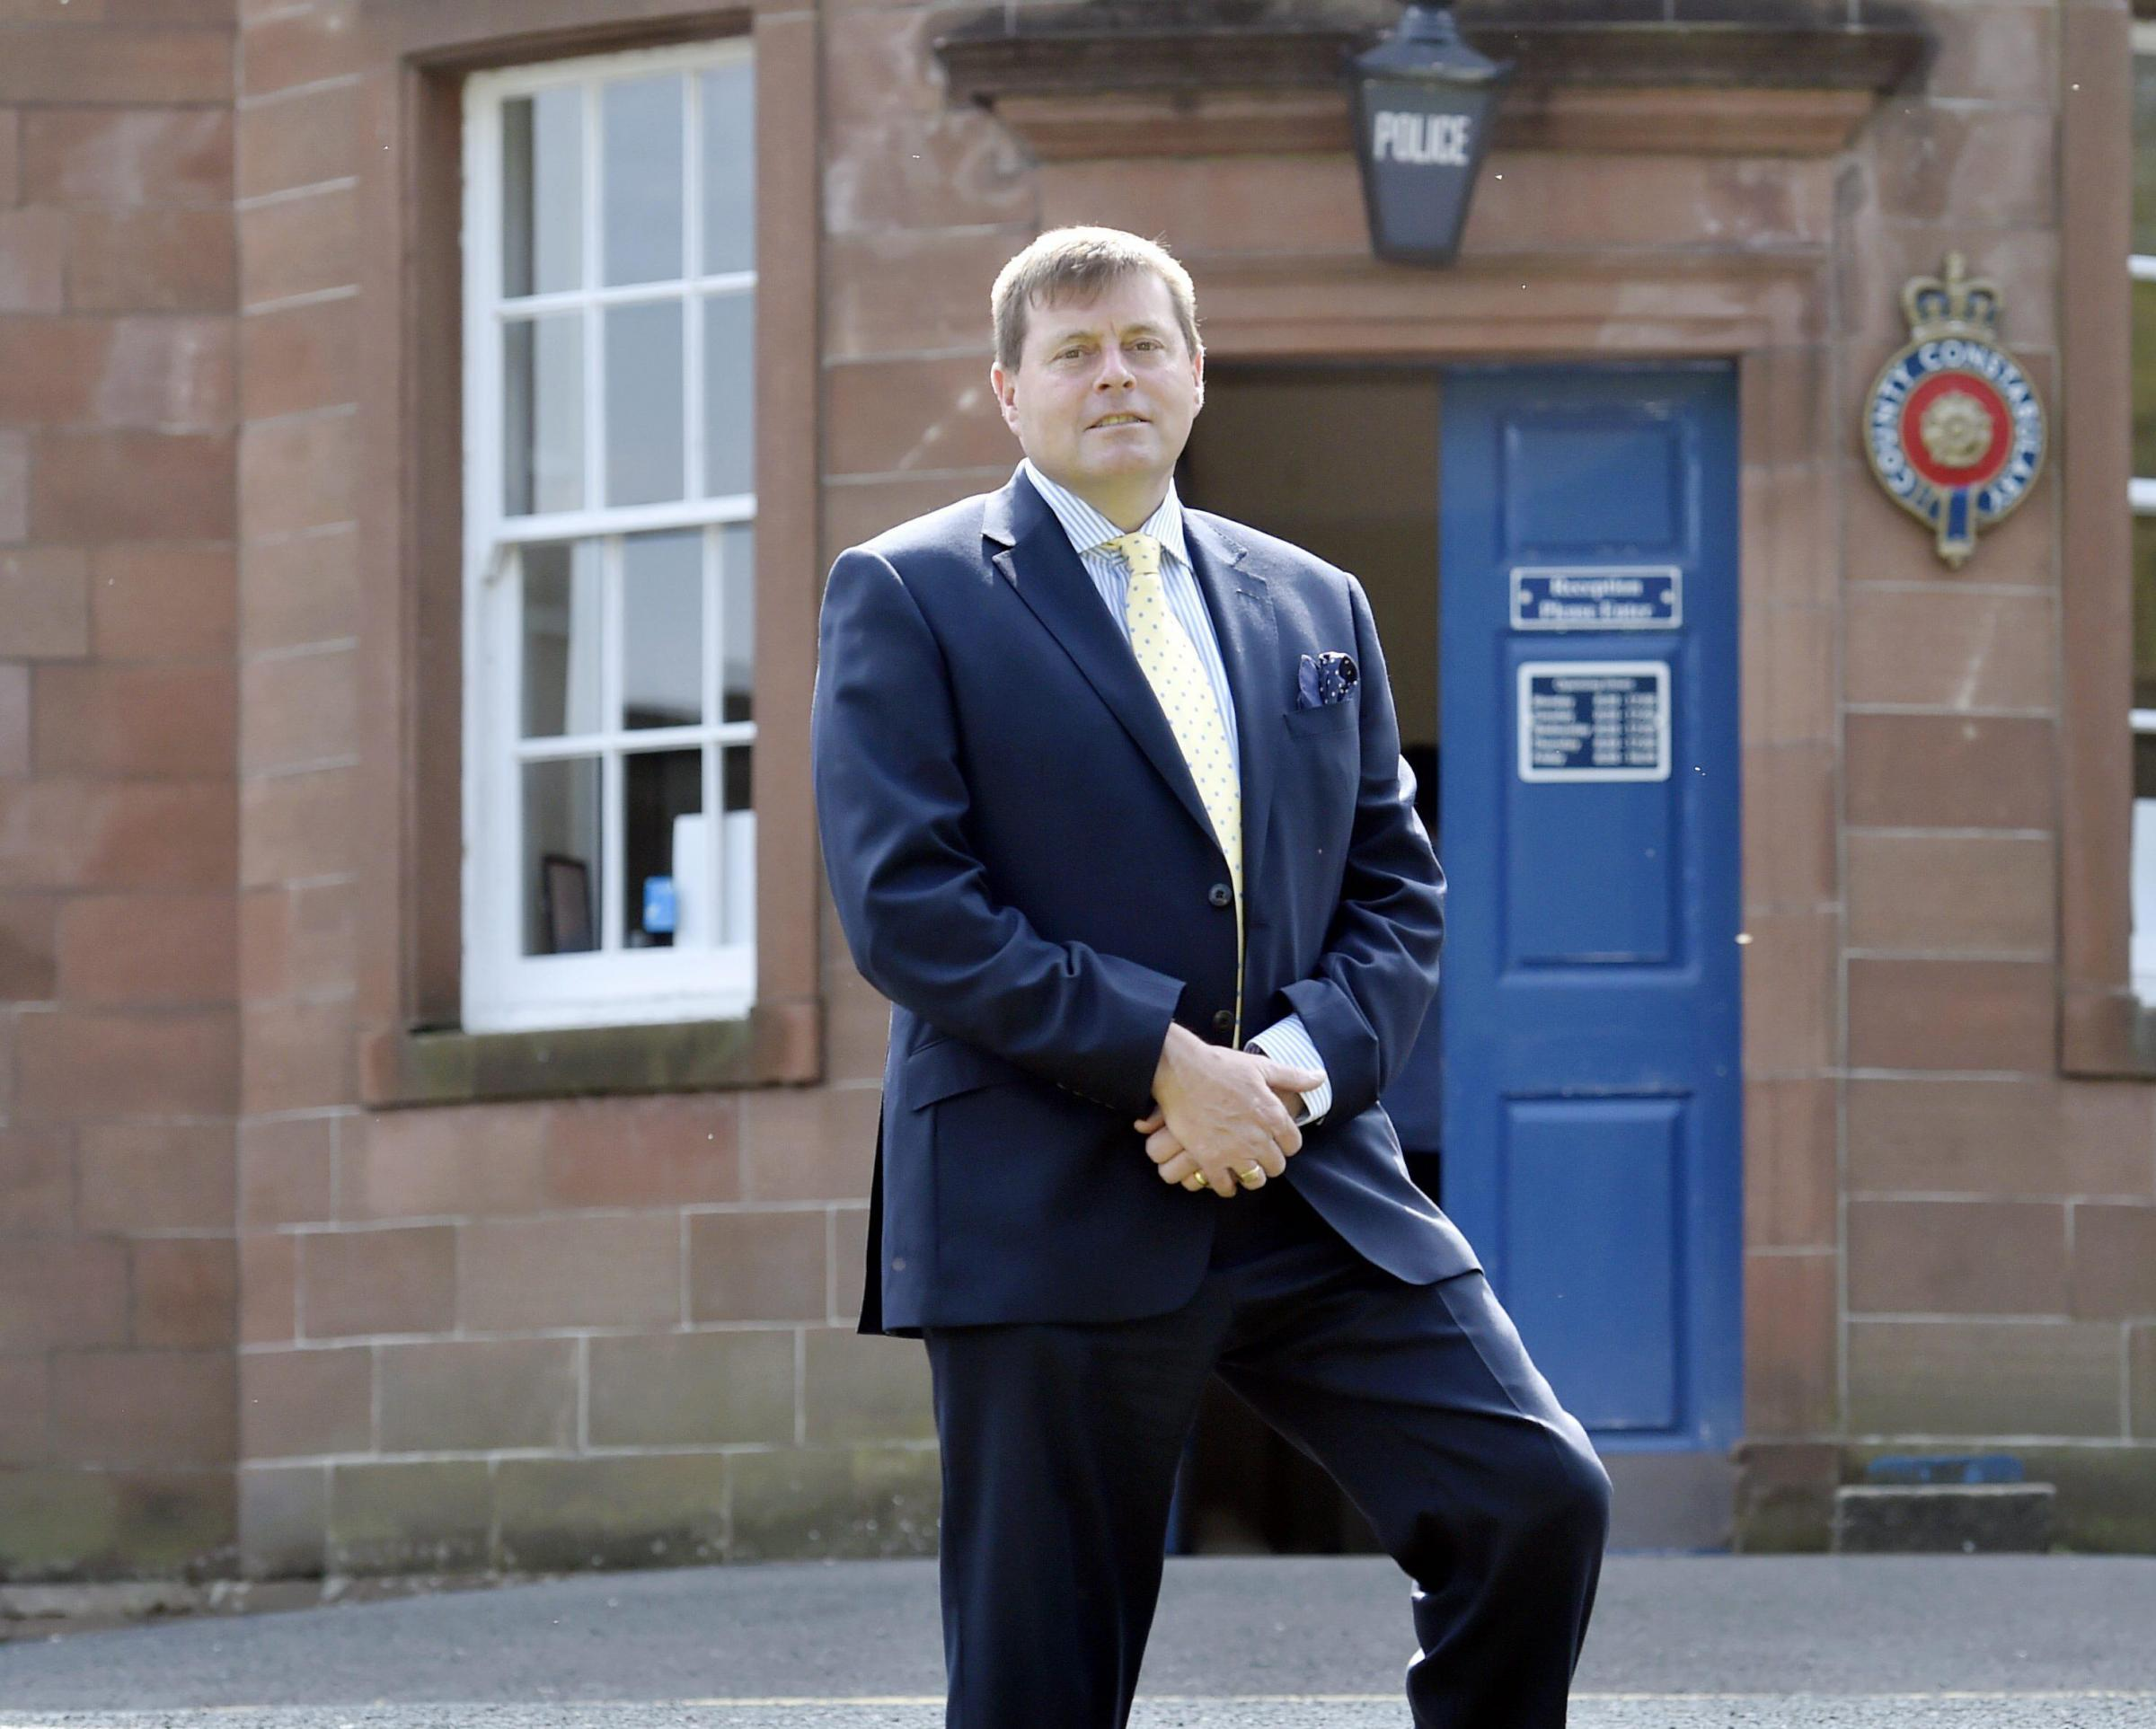 The new Police Crime Commissioner for Cumbria Peter McCall at the police headquarters in Penrith on his first day in office. THURSDAY 12th MAY 2016. DAVID HOLLINS 50084255F006.jpg.